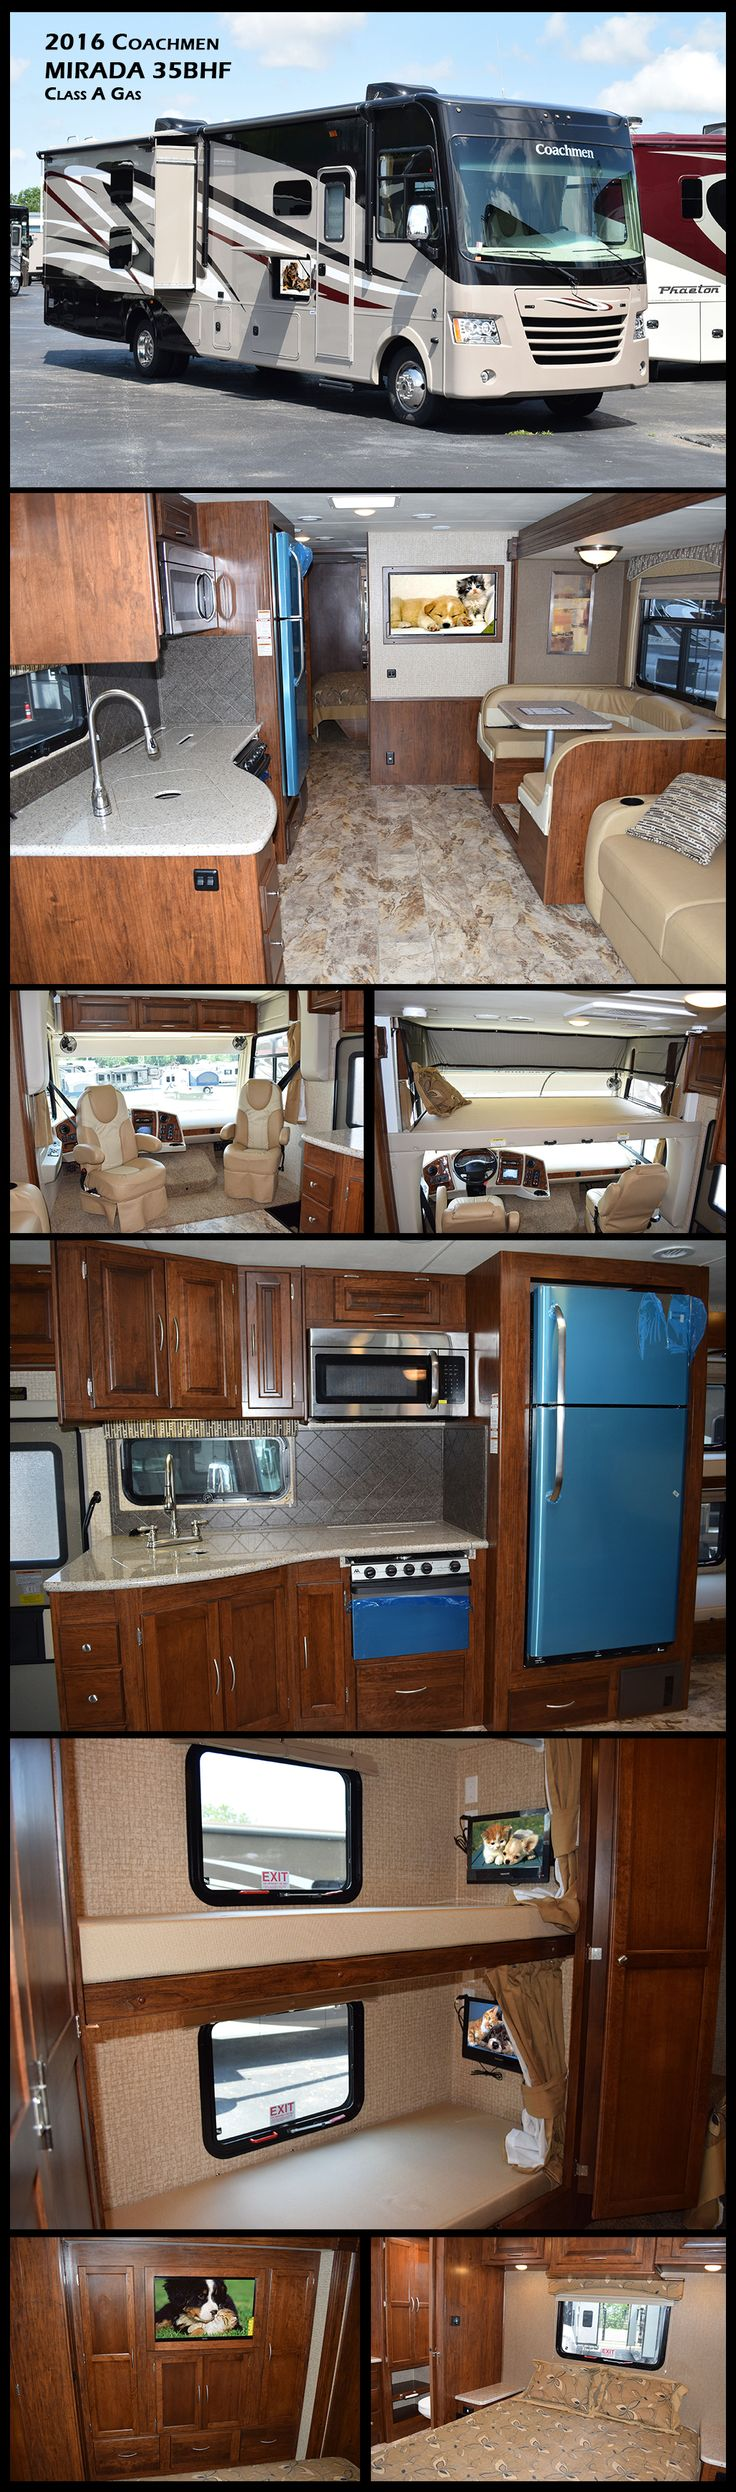 """2016 COACHMEN MIRADA 35BHF Class A Gas Motorhome definitely """"brings MORE to the road"""" for LESS! With a long standard feature list that includes item such as; Corian kitchen countertops, Corian sink covers, hard wood cabinet doors with raised panel inserts, automatic leveling jacks, two 13,500BTU air conditioners, 50 amp service, 32"""" TV in living room and a bedroom TV, plus ample pass through exterior storage. This 35BH also feature bunk beds that can convert into a wardrobe."""